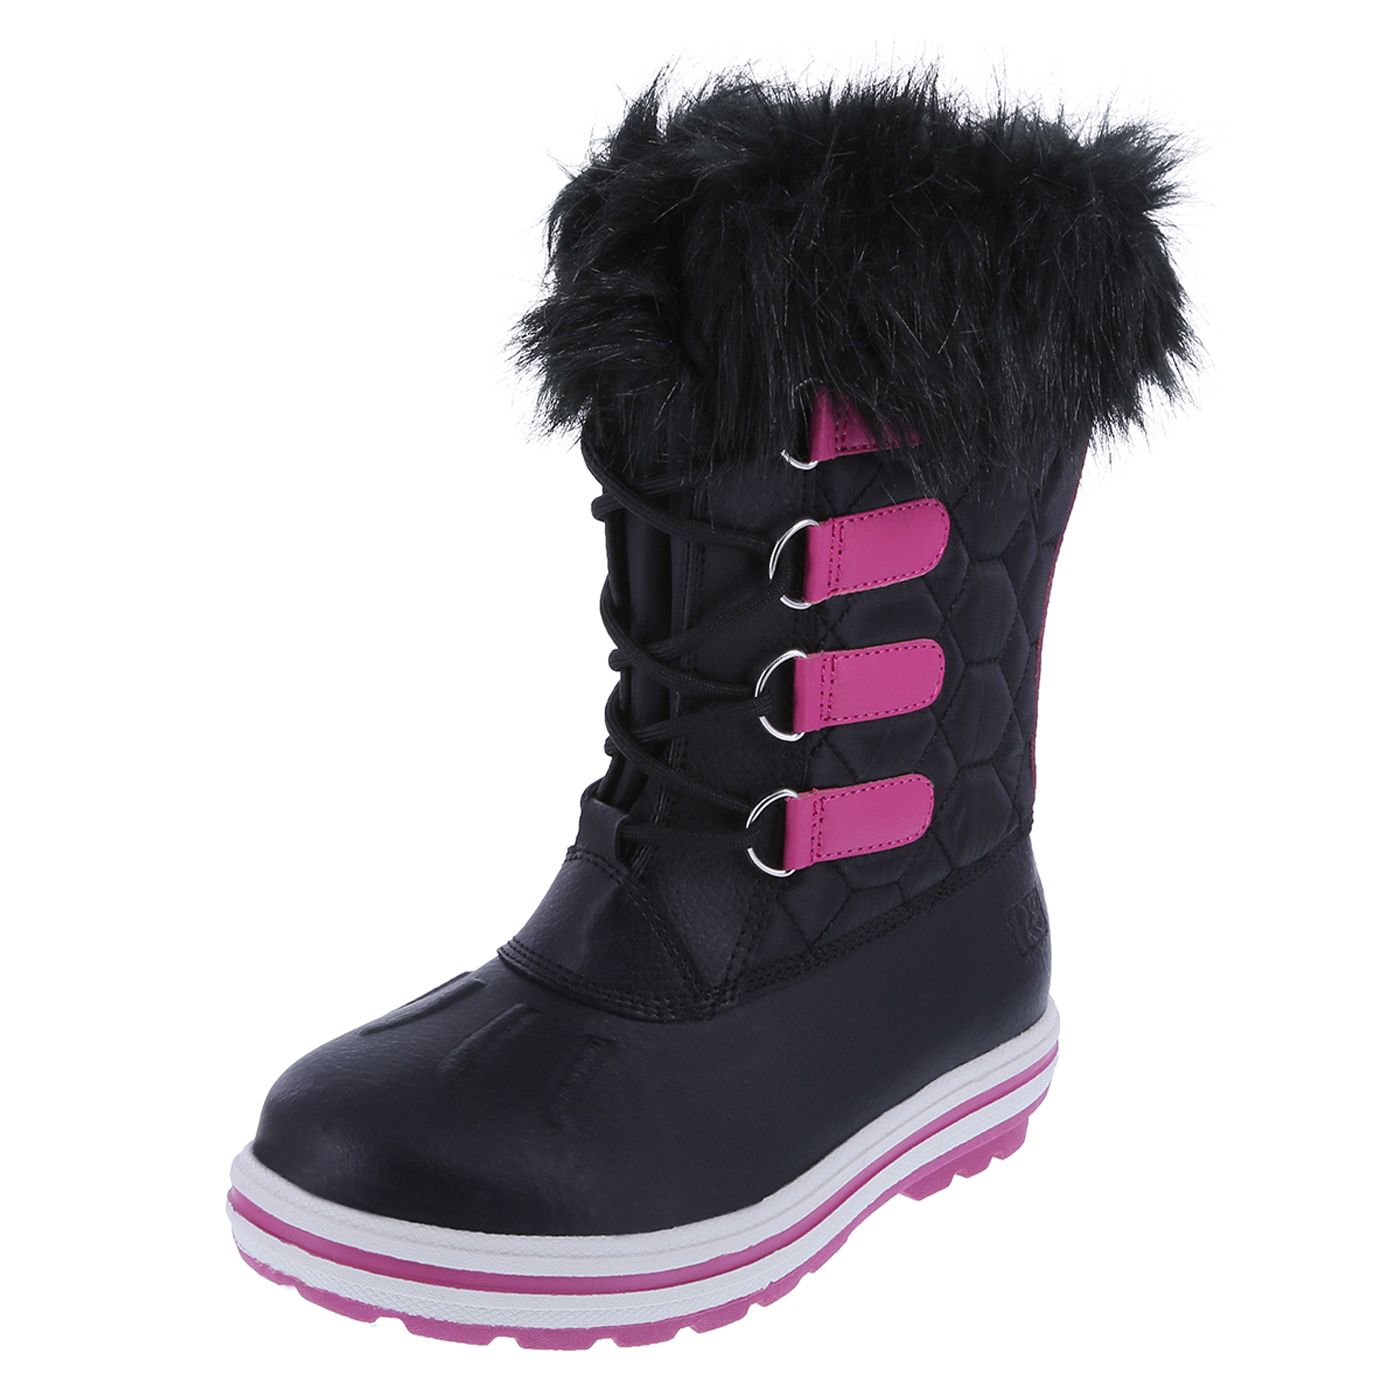 boots for girls at low price